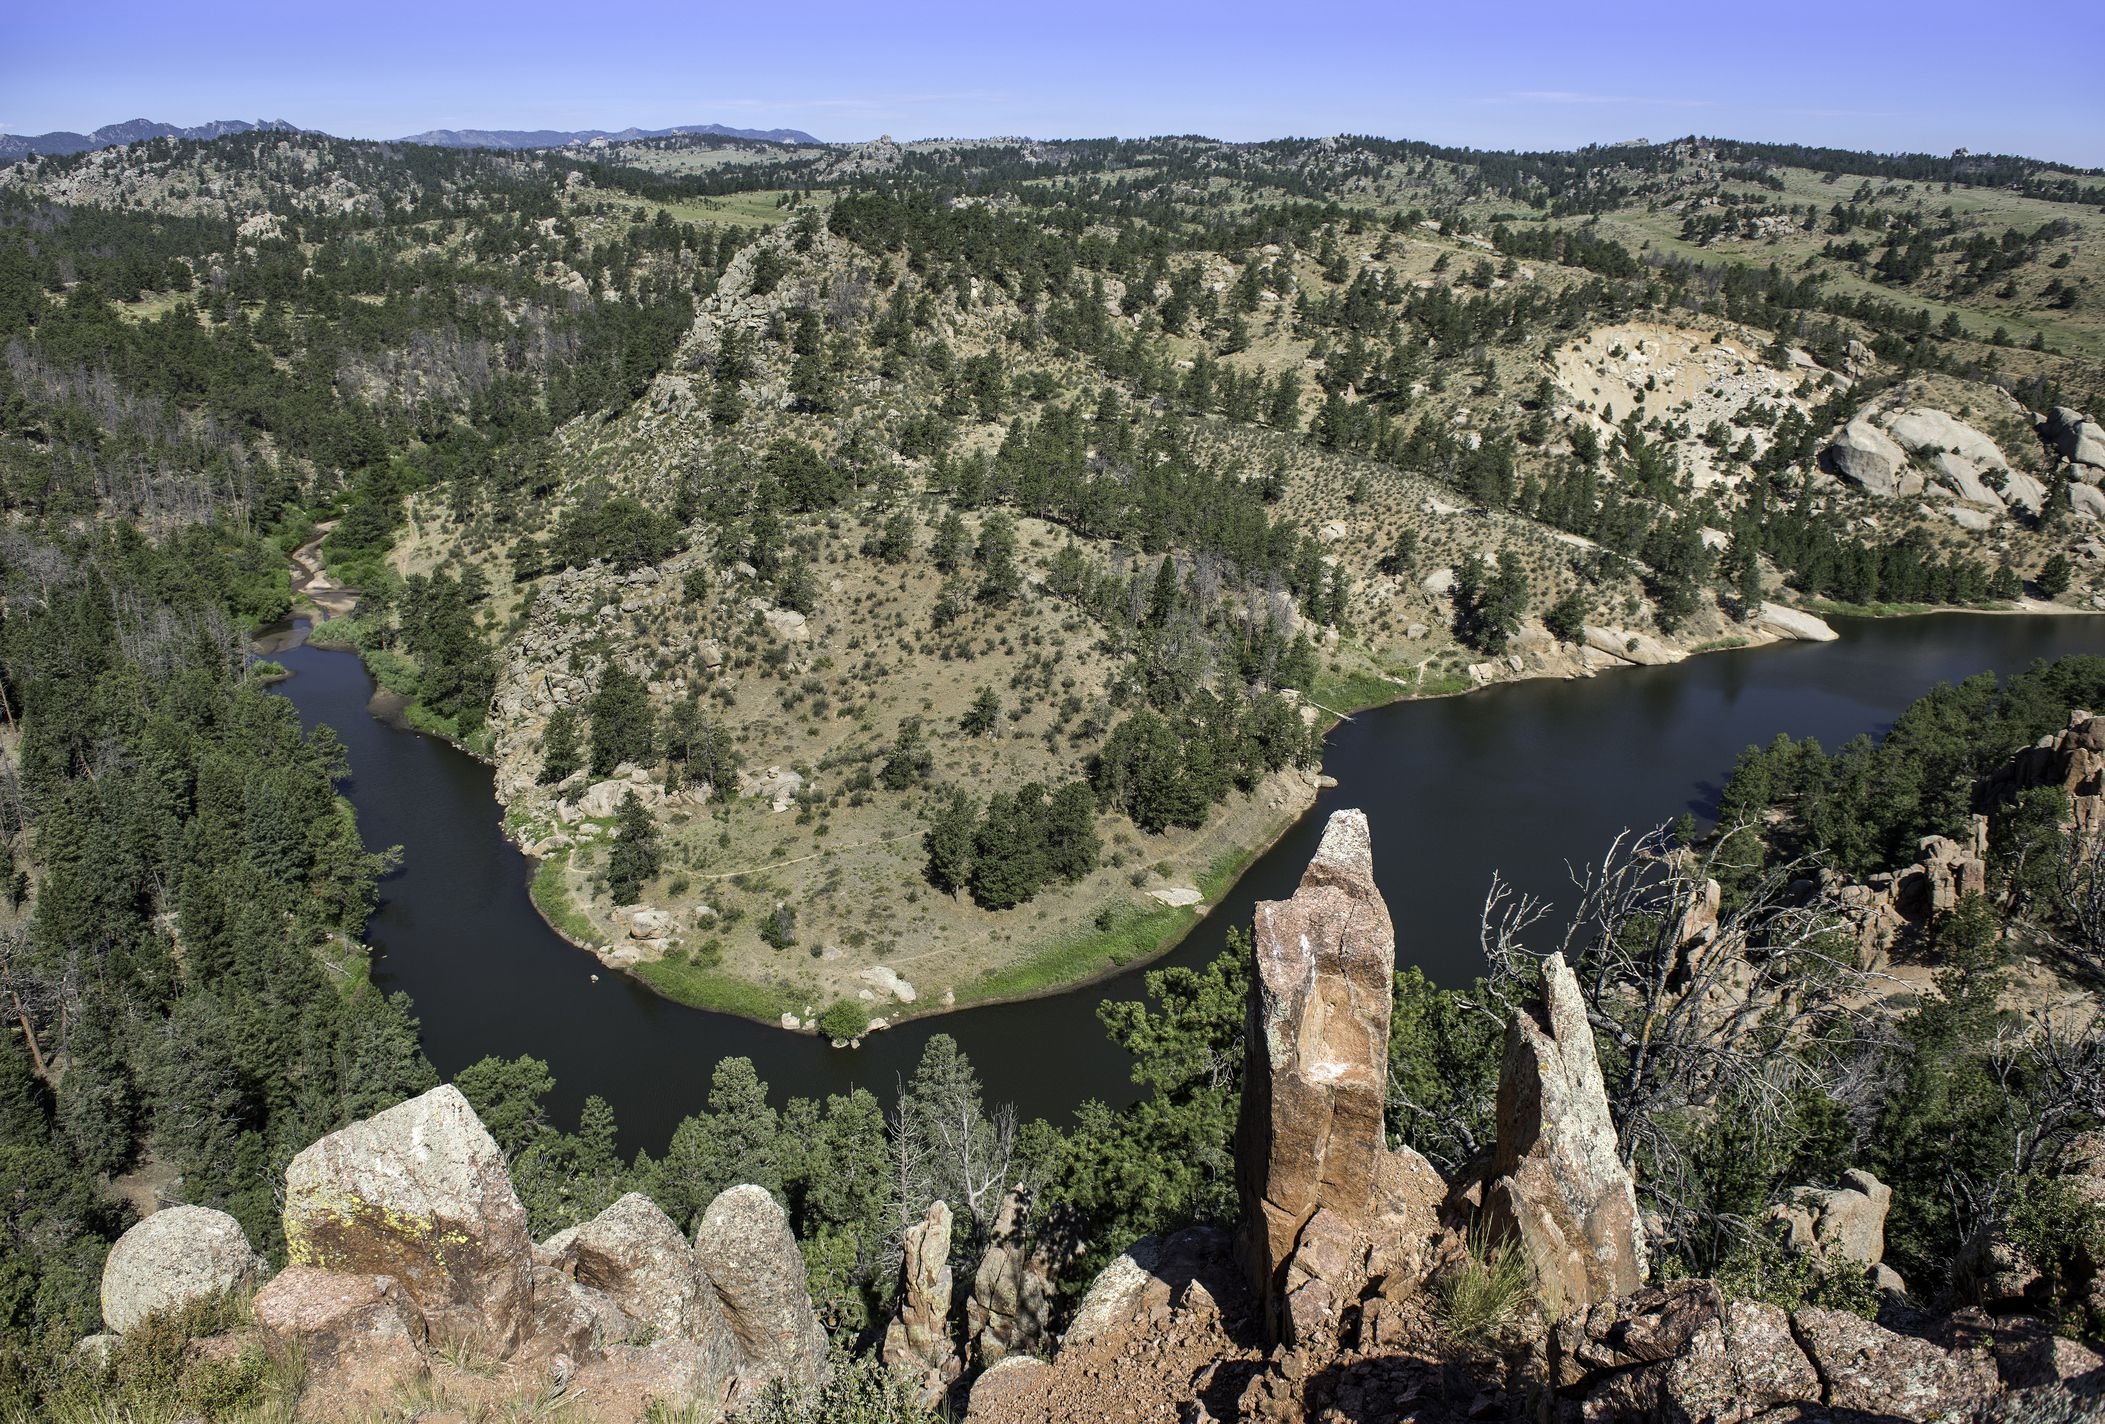 Aerial of Curt Gowdy State Park, Wyoming